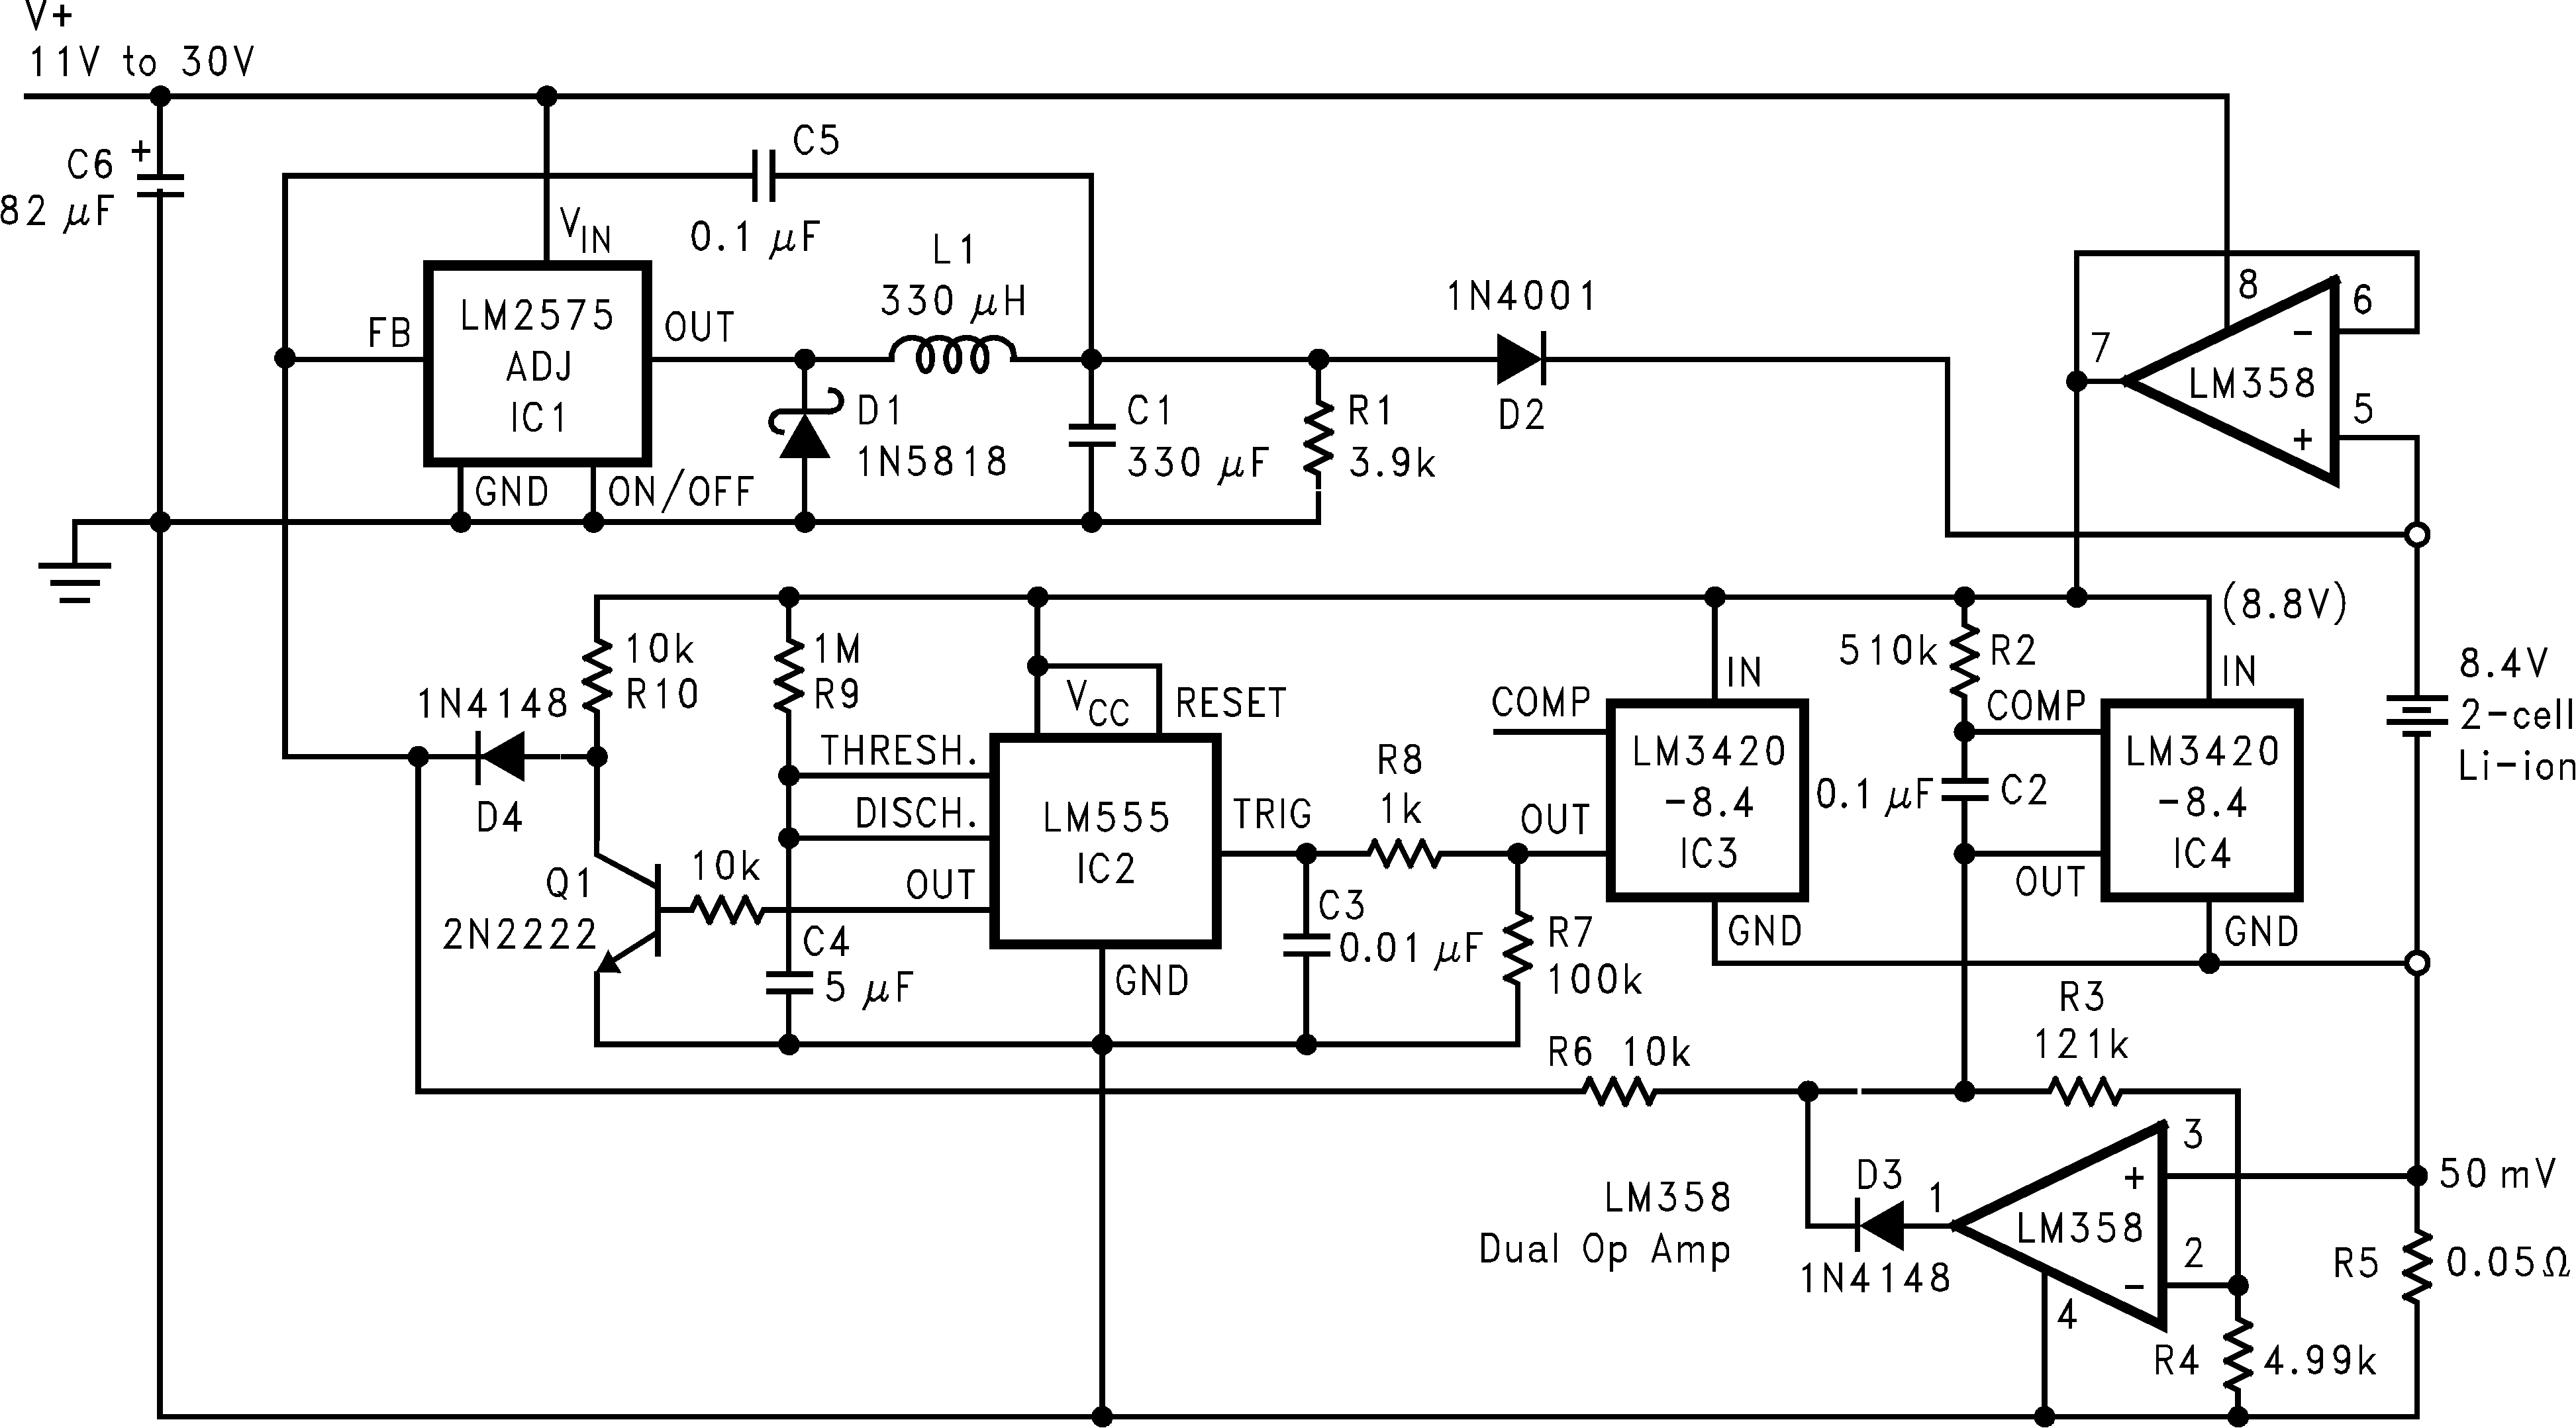 Lm3420 Lithium Battery Charger Circuit Diagram Fast Pulsed Constant Current 2 Cell